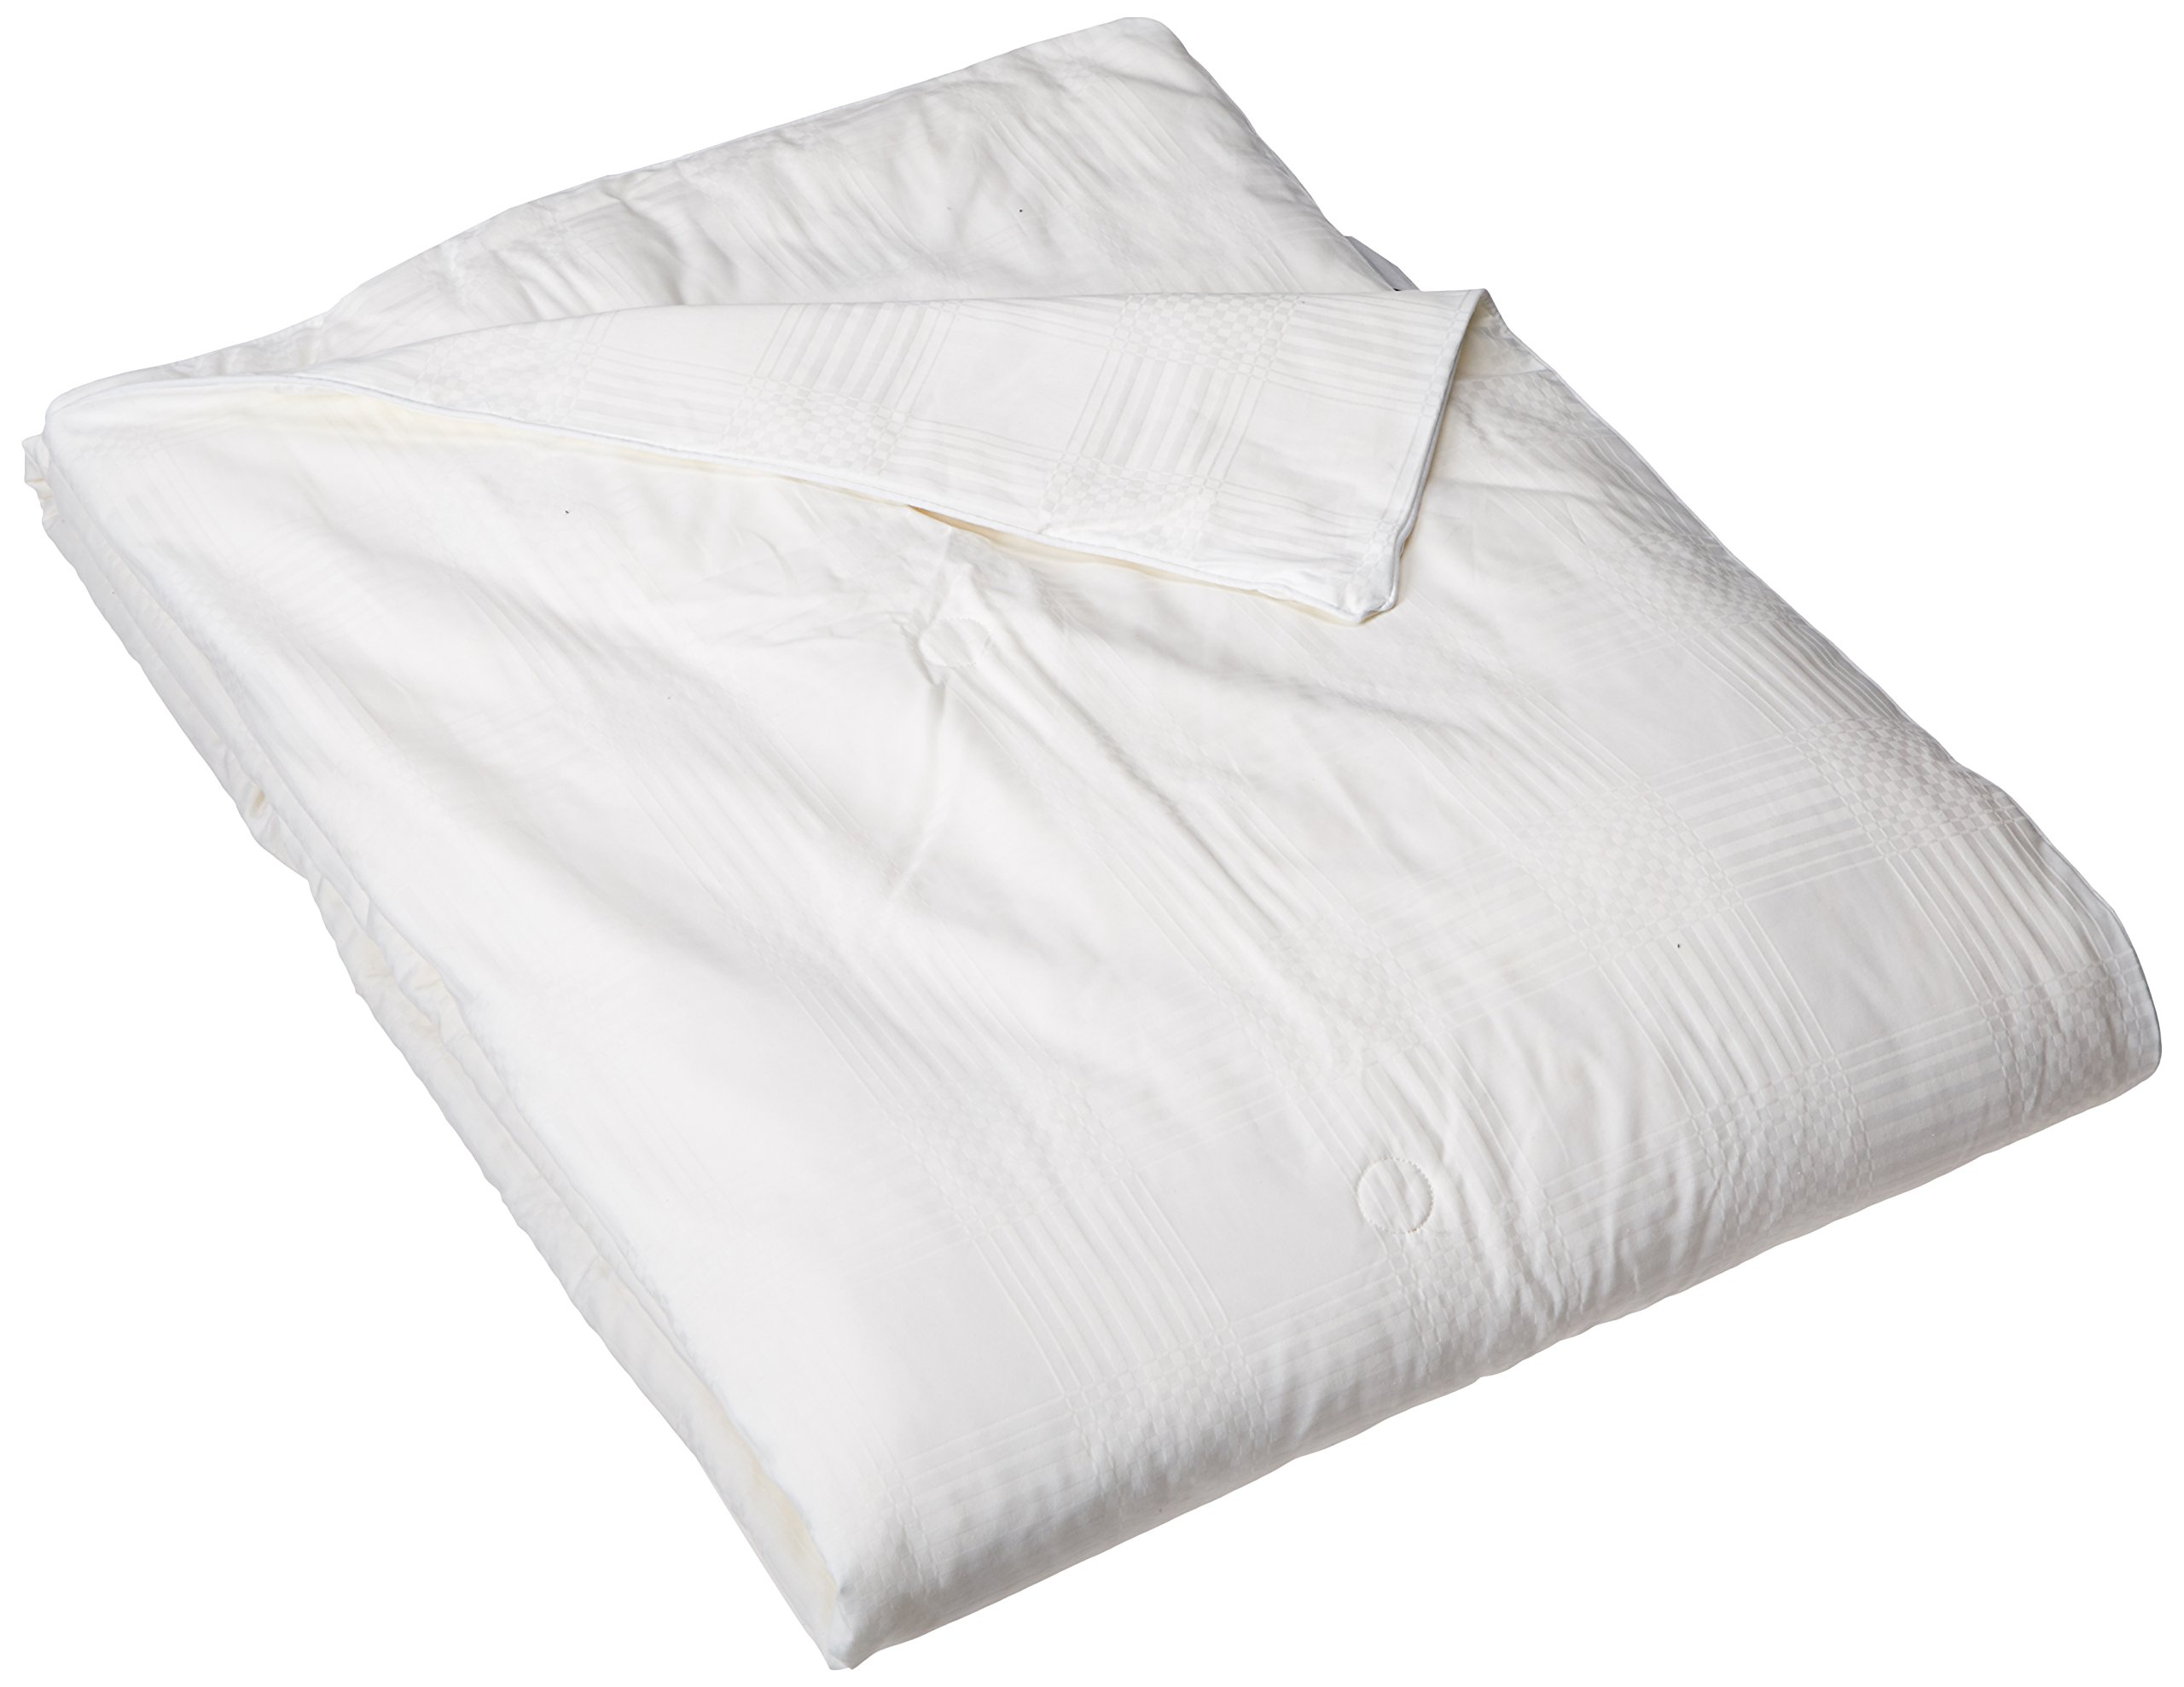 Natural Comfort Ultra Deluxe 100-Percent Natural Mulberry Silk Filled Dobby White Comforter for Summer, Queen by Natural Comfort